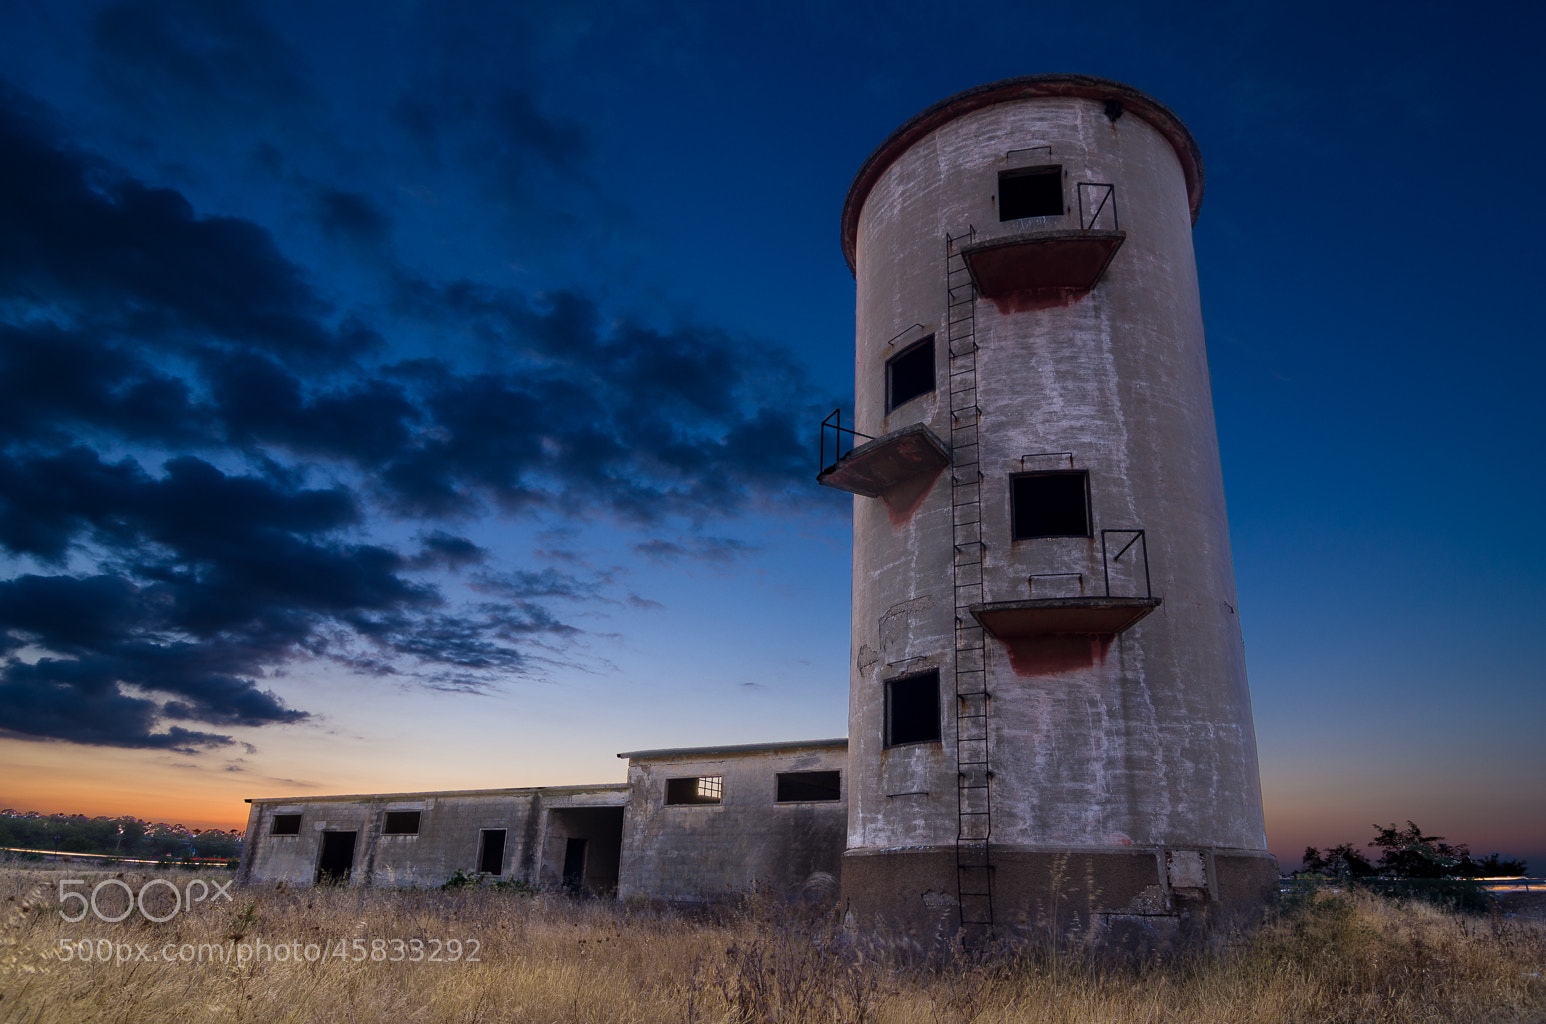 Photograph Abandoned buildings by Massimo Sanna on 500px